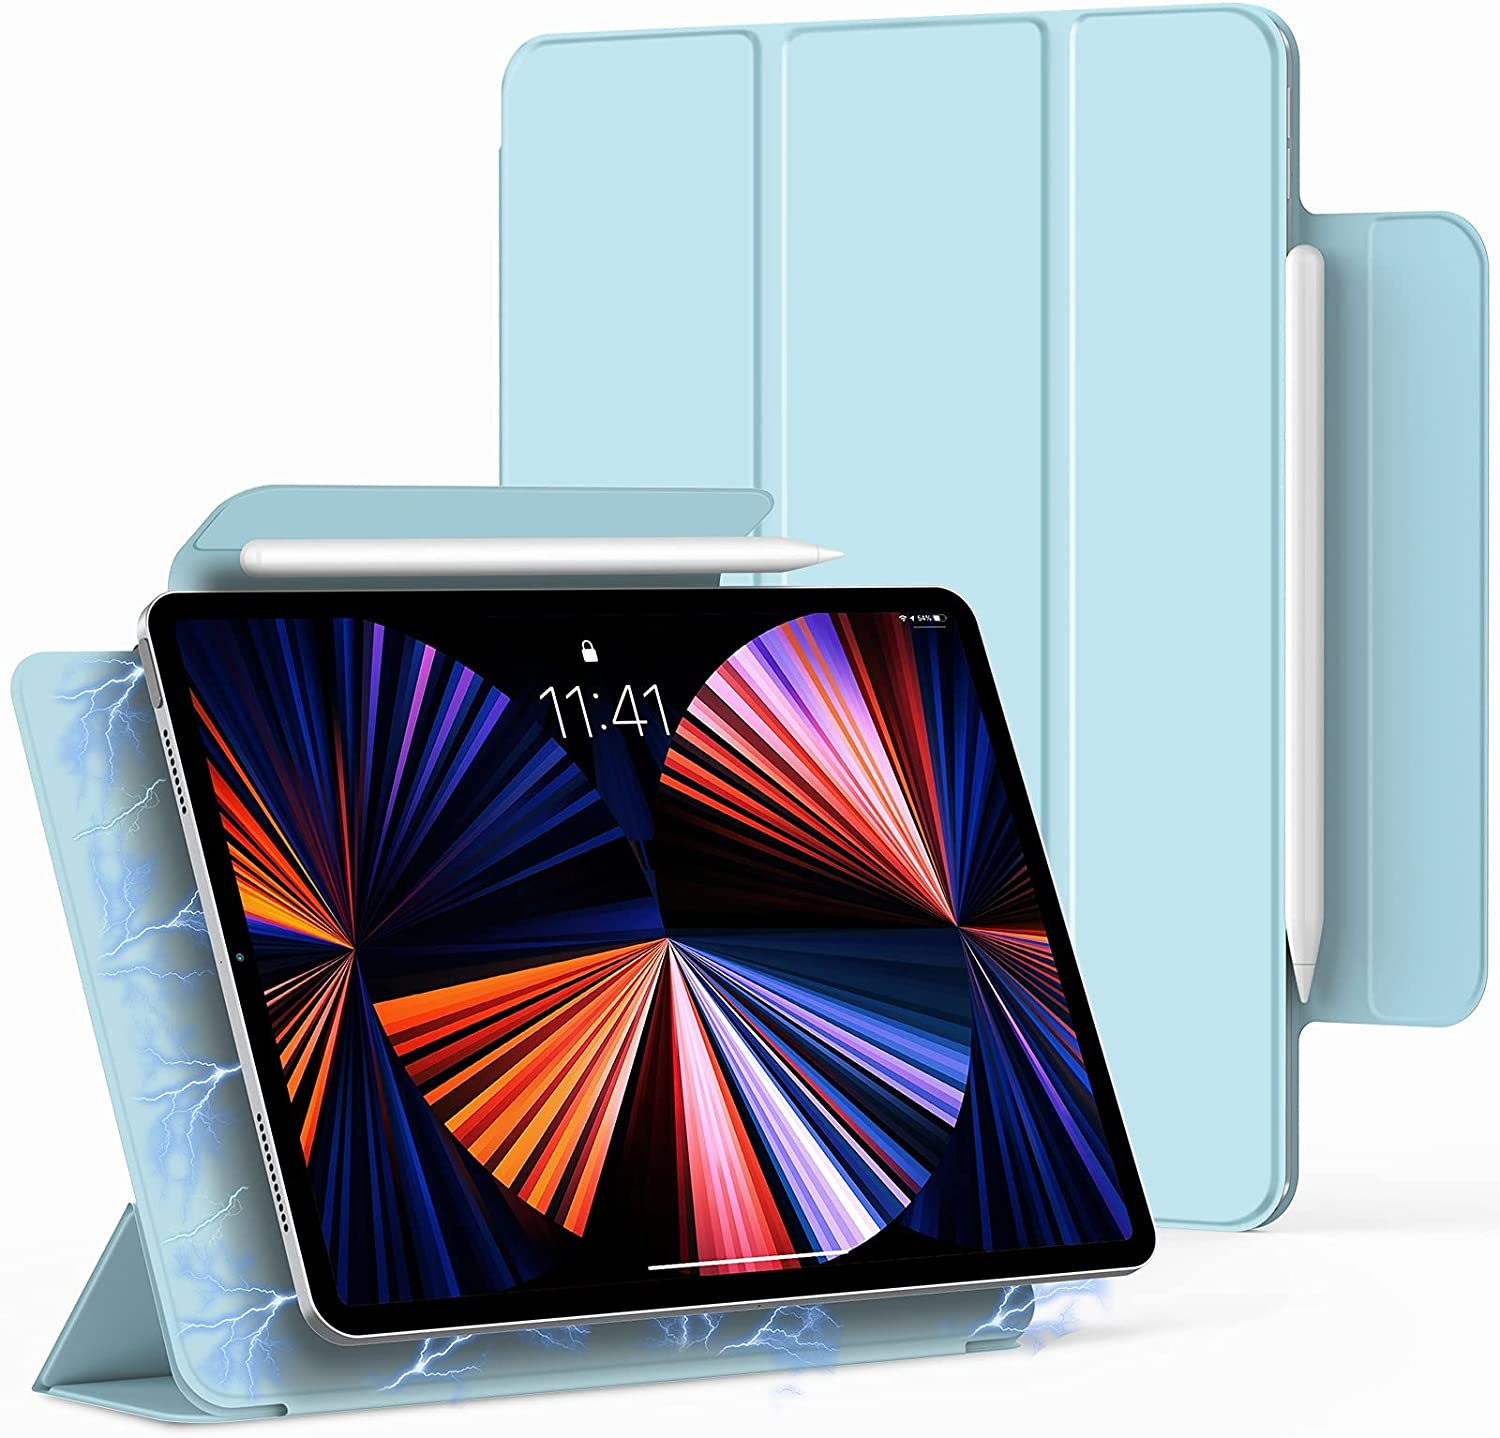 Bokeer Magnetic Case for iPad Pro 11 inch 2021 / iPad Air 4 / iPad Pro 11 2020 & 2018, Support Auto Sleep/Wake & Apple Pencil Charging, Lightweight Trifold Stand Magnetic Cover (Sky Blue)